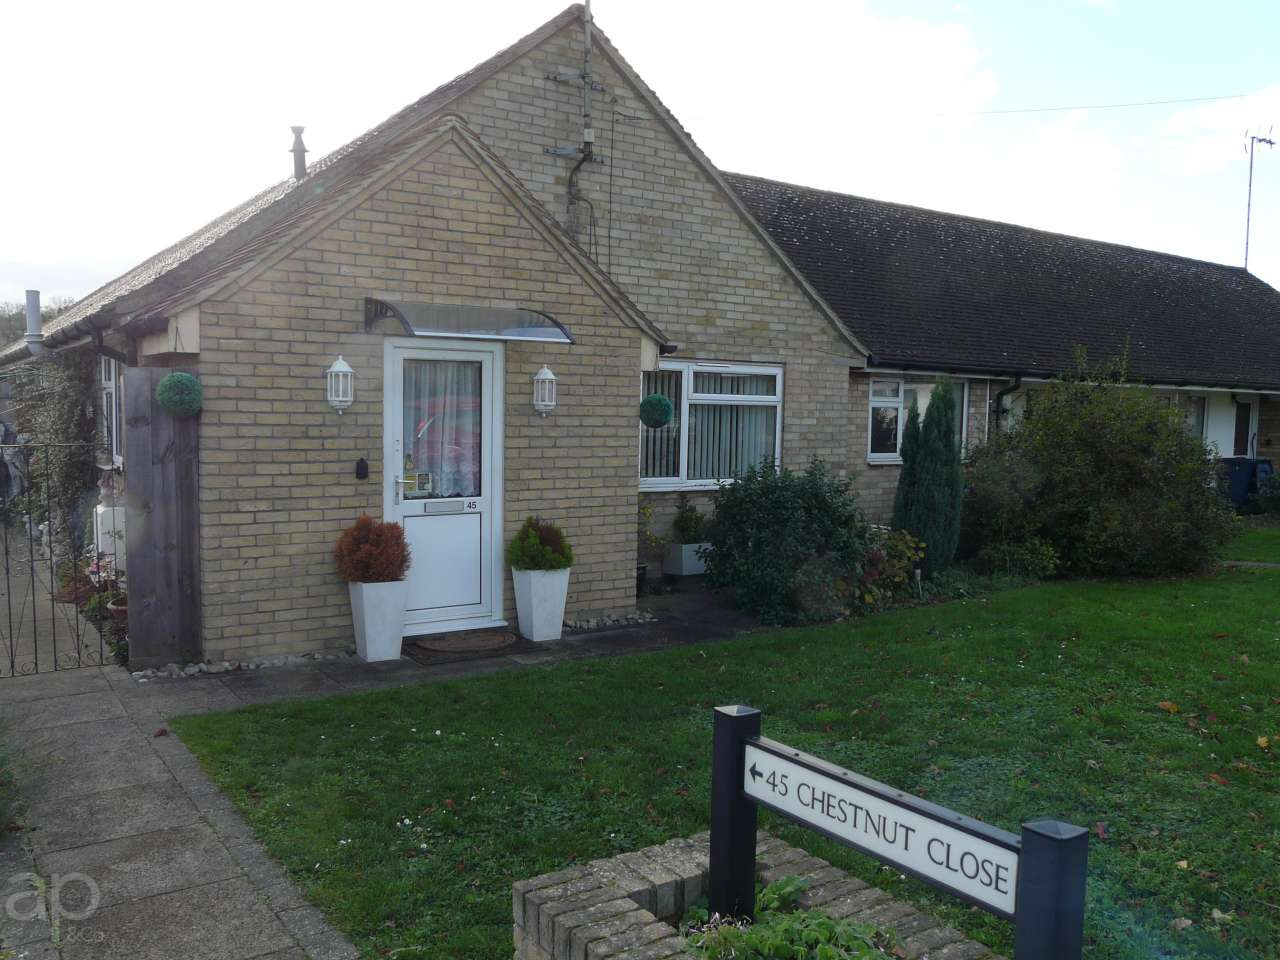 45 Chestnut Close, Cambridge, CB23 1JU